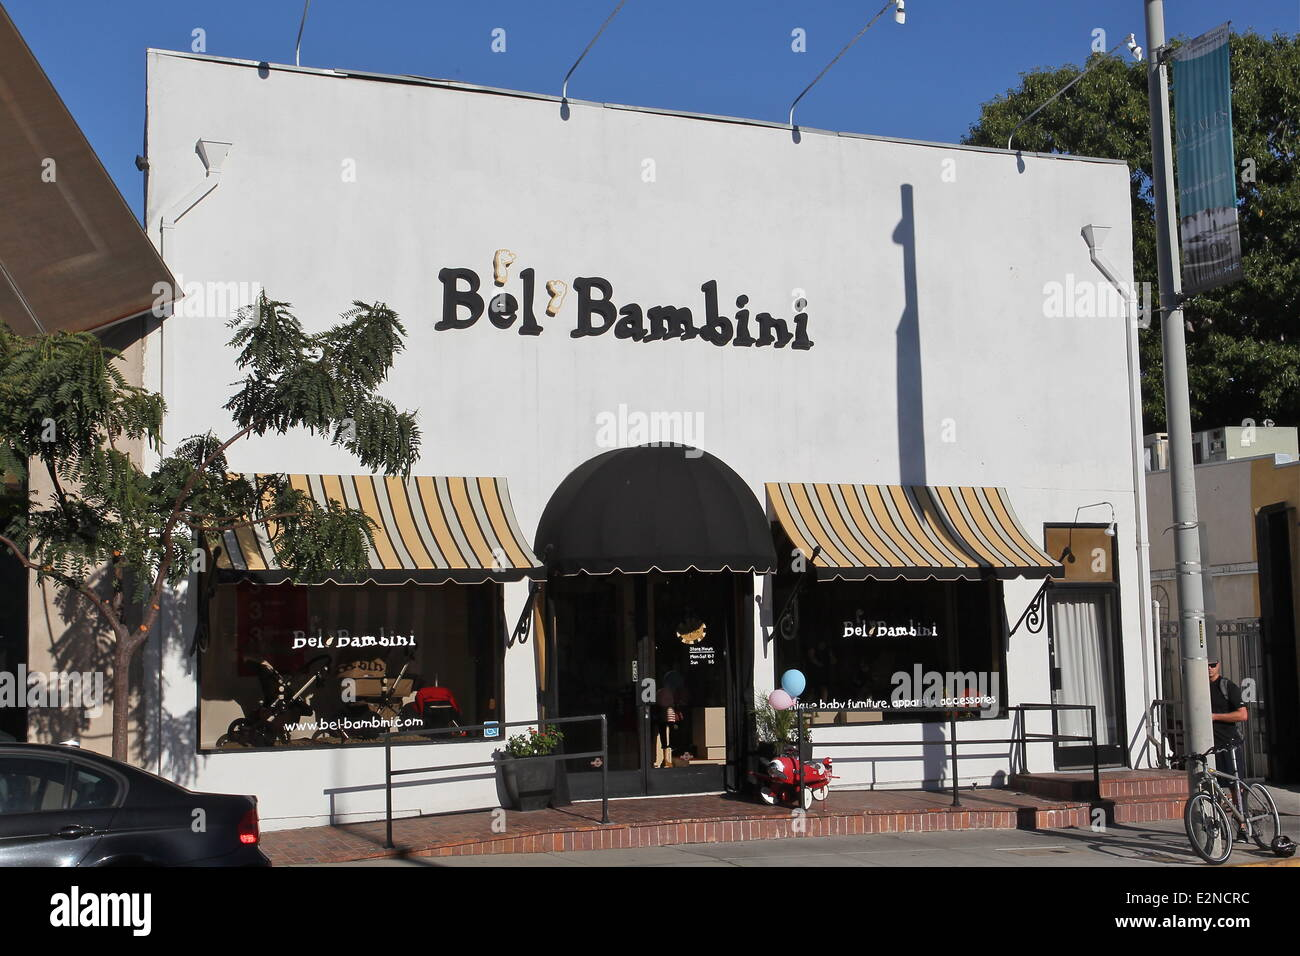 d942889e3be Adele aka Adele Adkins shops at Bel Bambini Baby Boutique in Beverly Hills  Featuring  Exterior